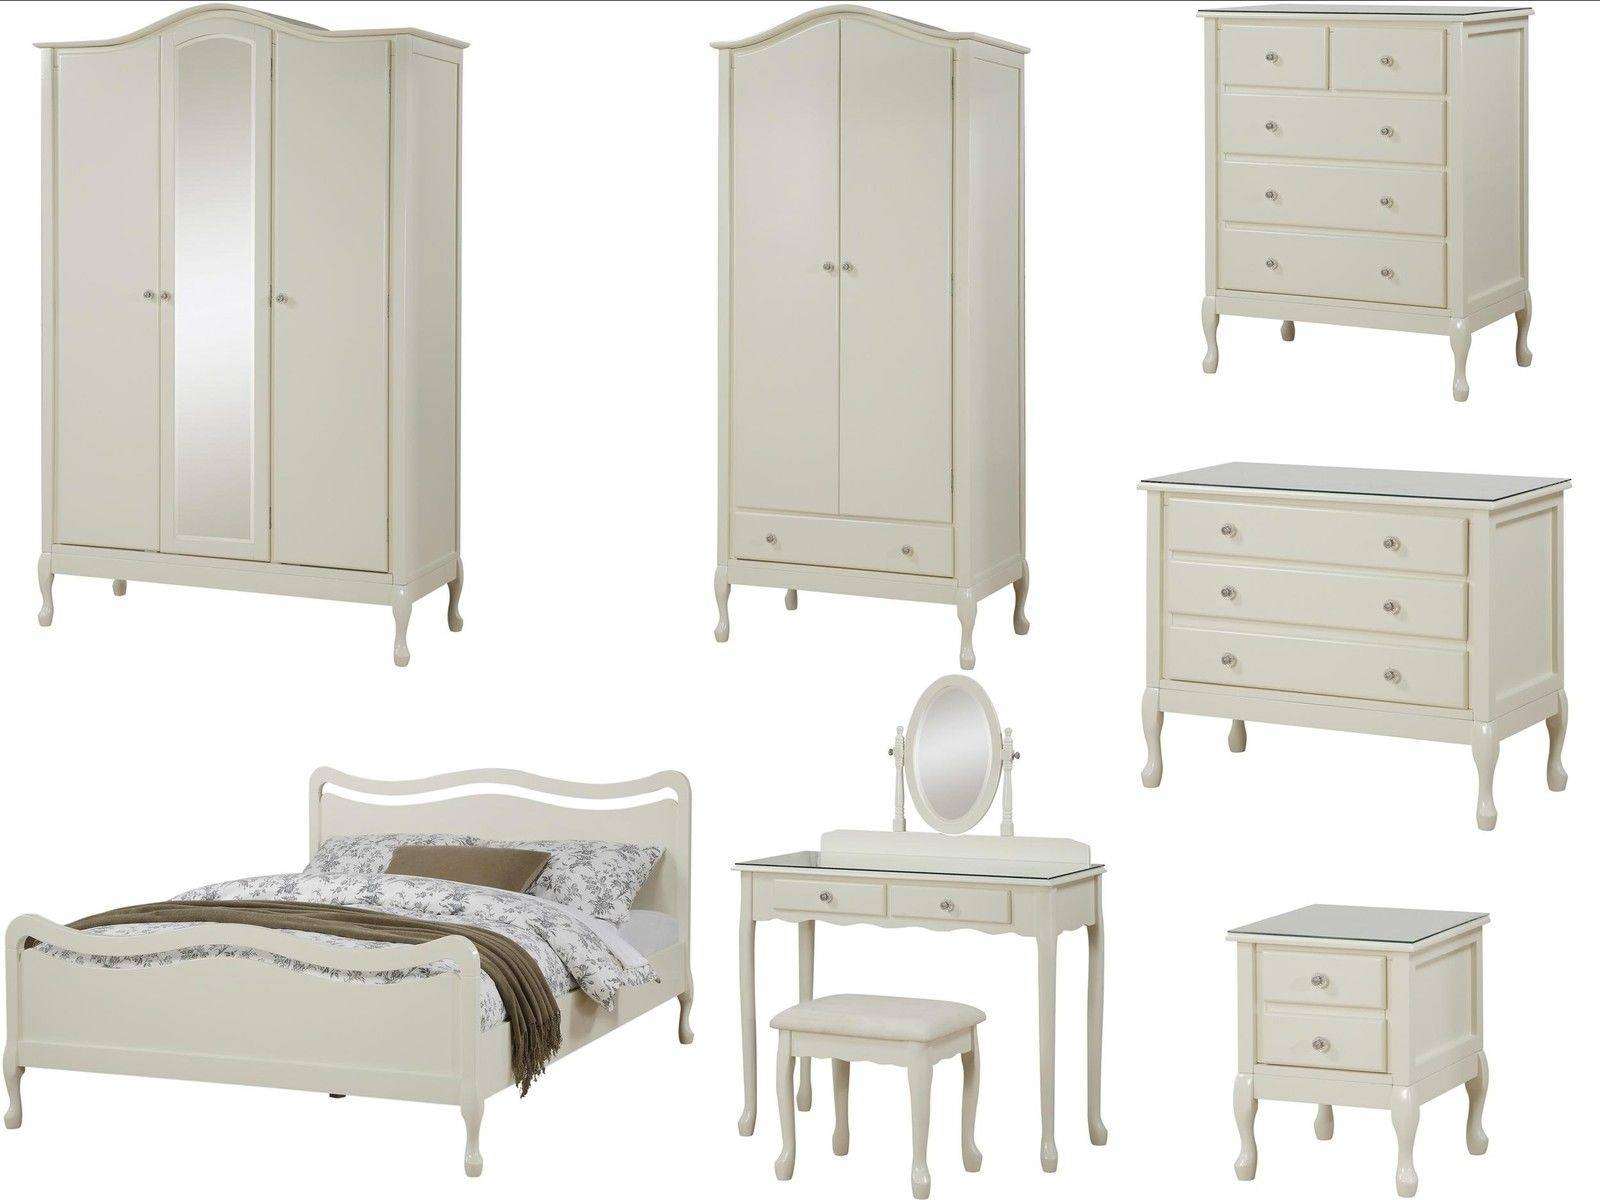 Loire Shabby Chic Ivory Bedroom Furniture - Wardrobe, Chest, Bed with regard to Ivory Wardrobes (Image 7 of 15)